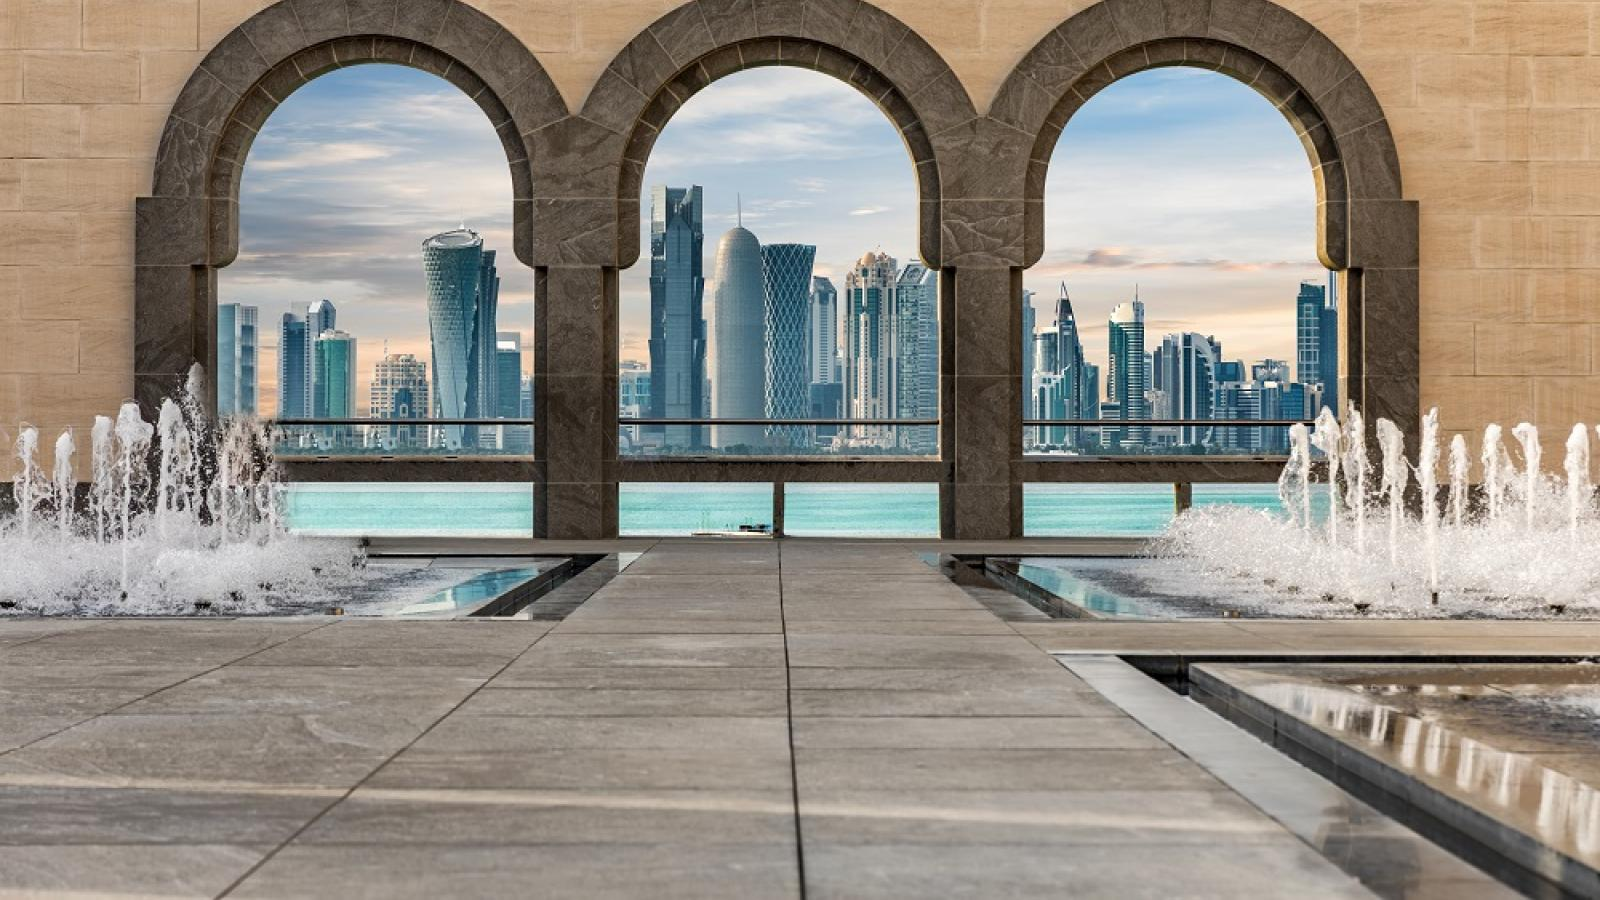 15 amazing things you probably didn't know about Qatar